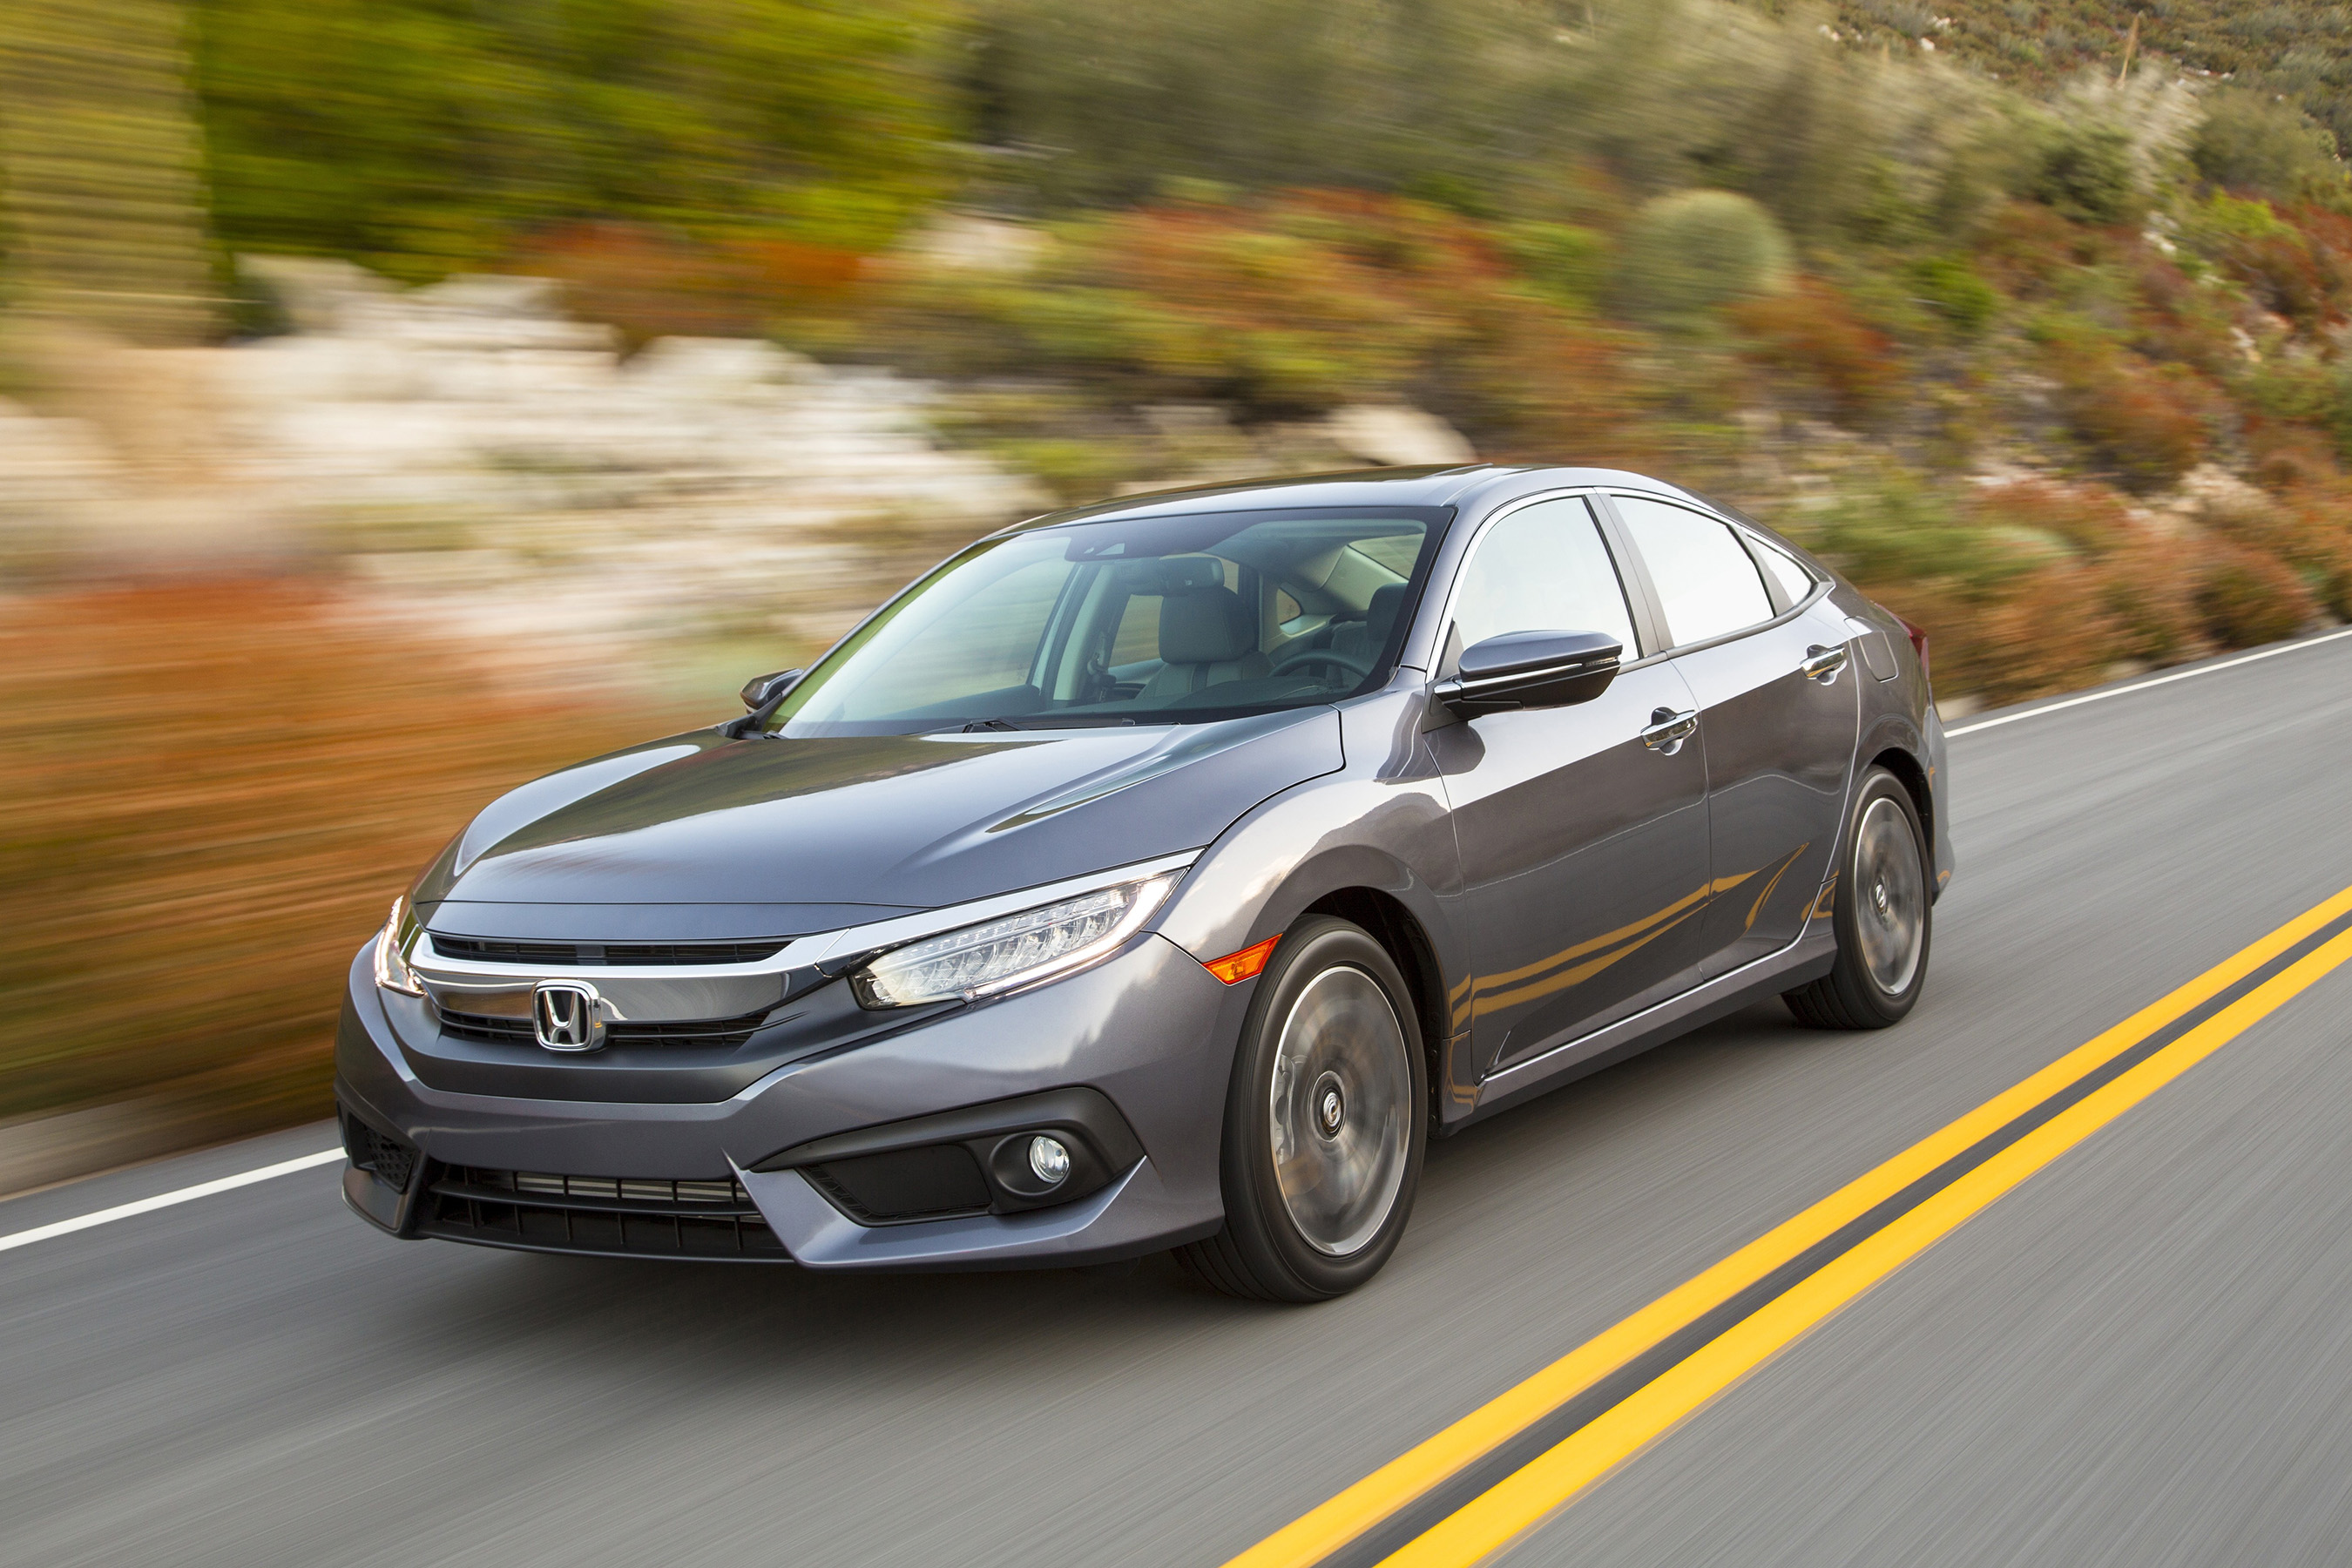 KBB.com 10 Coolest Cars: Our Overall Best Buy for 2016, the 2016 Civic is among the roomiest, most comfortable, most fun to drive, most efficient and most feature-packed cars in the class.